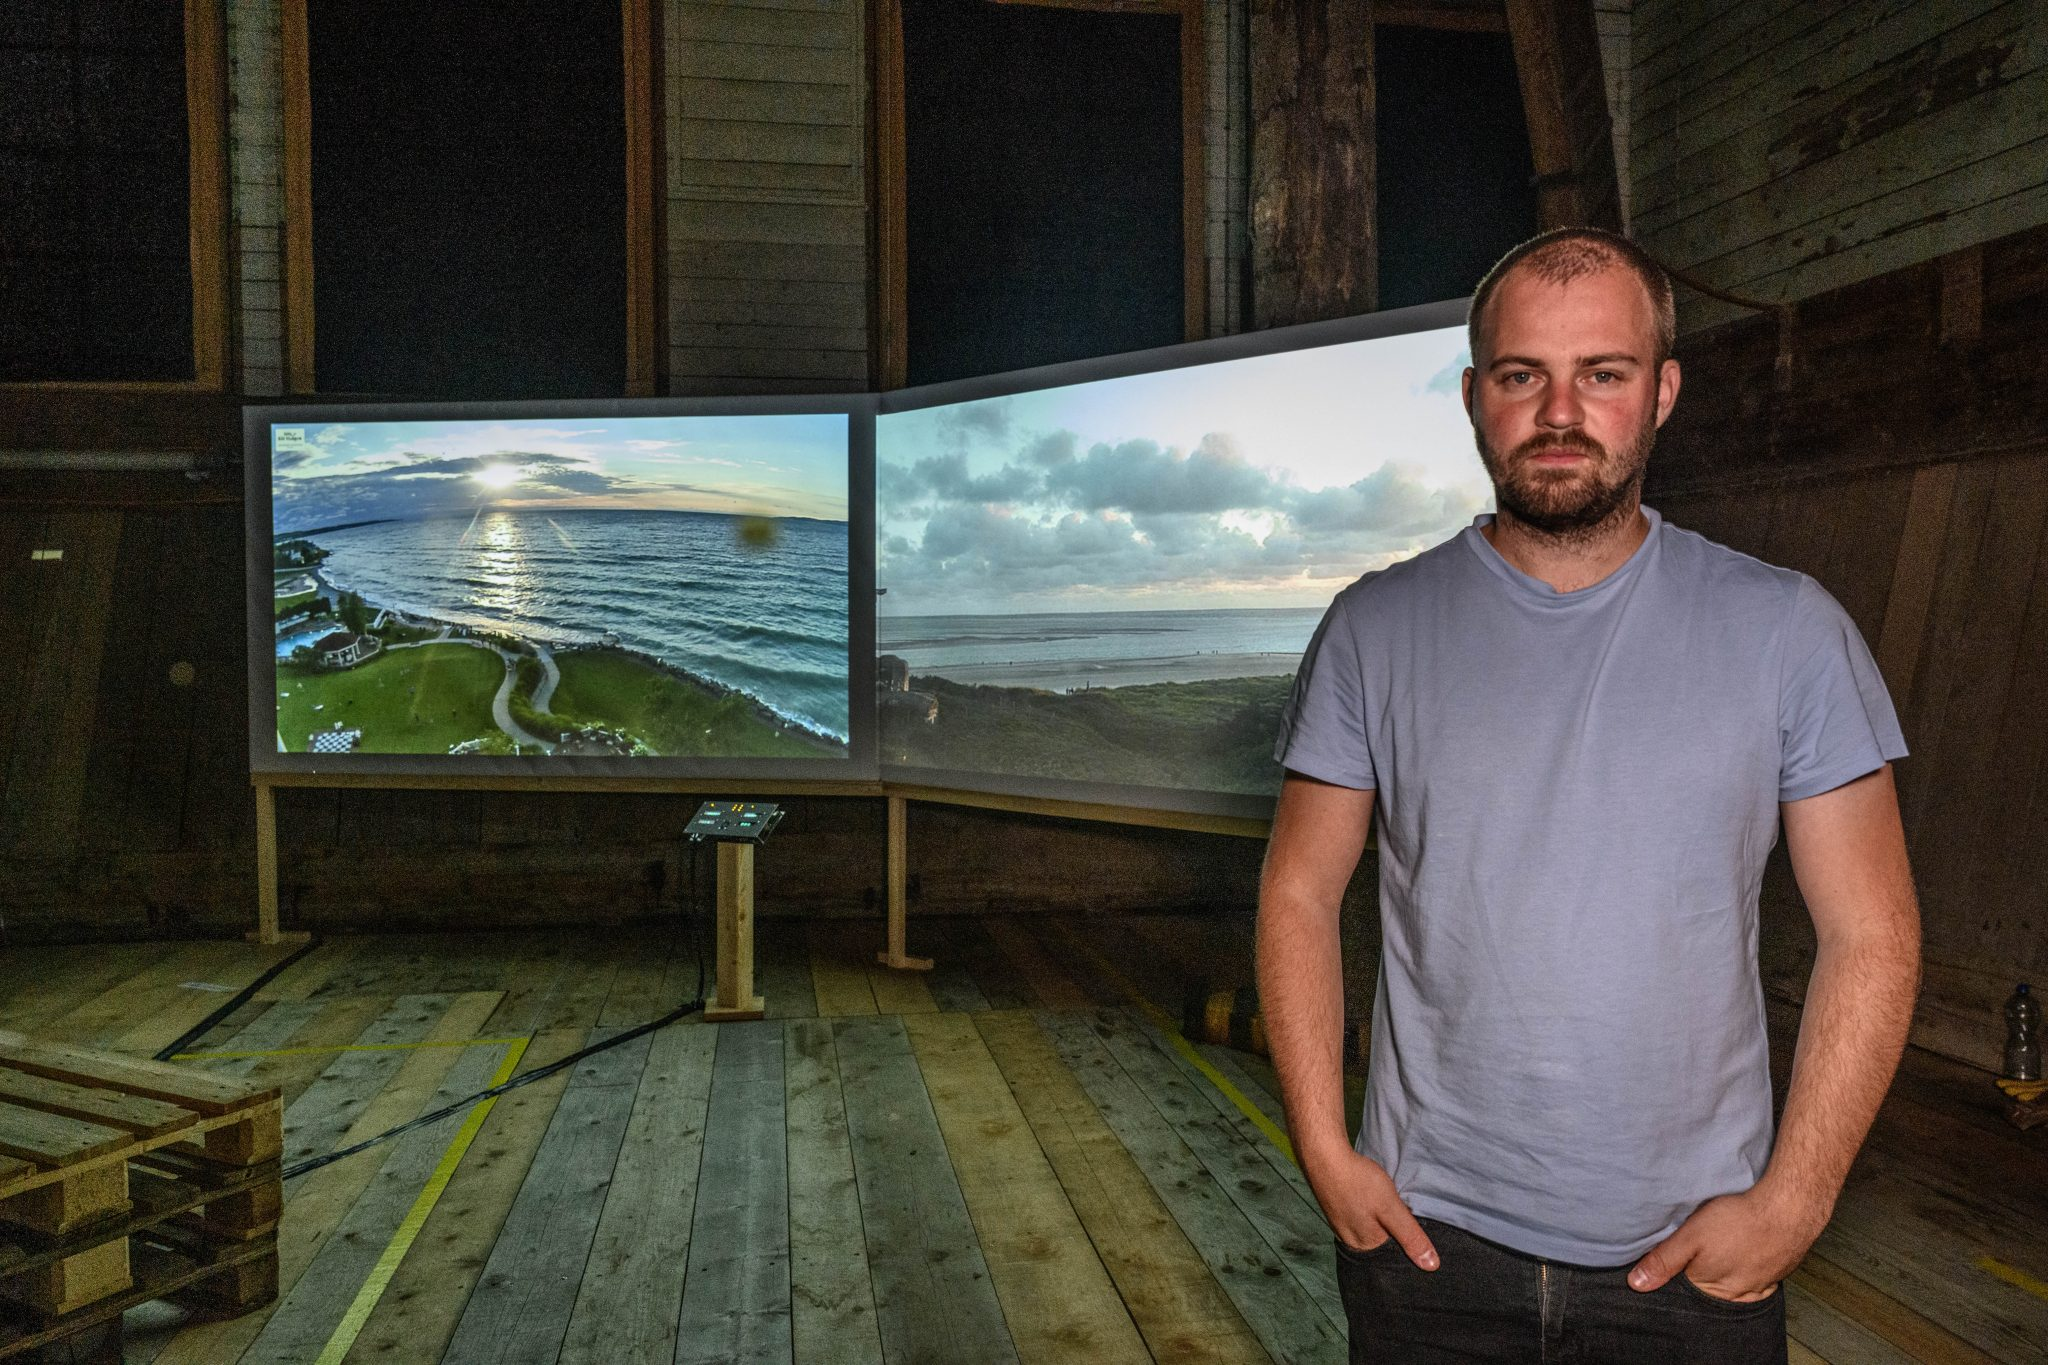 The artist stood infront of the two large display screens